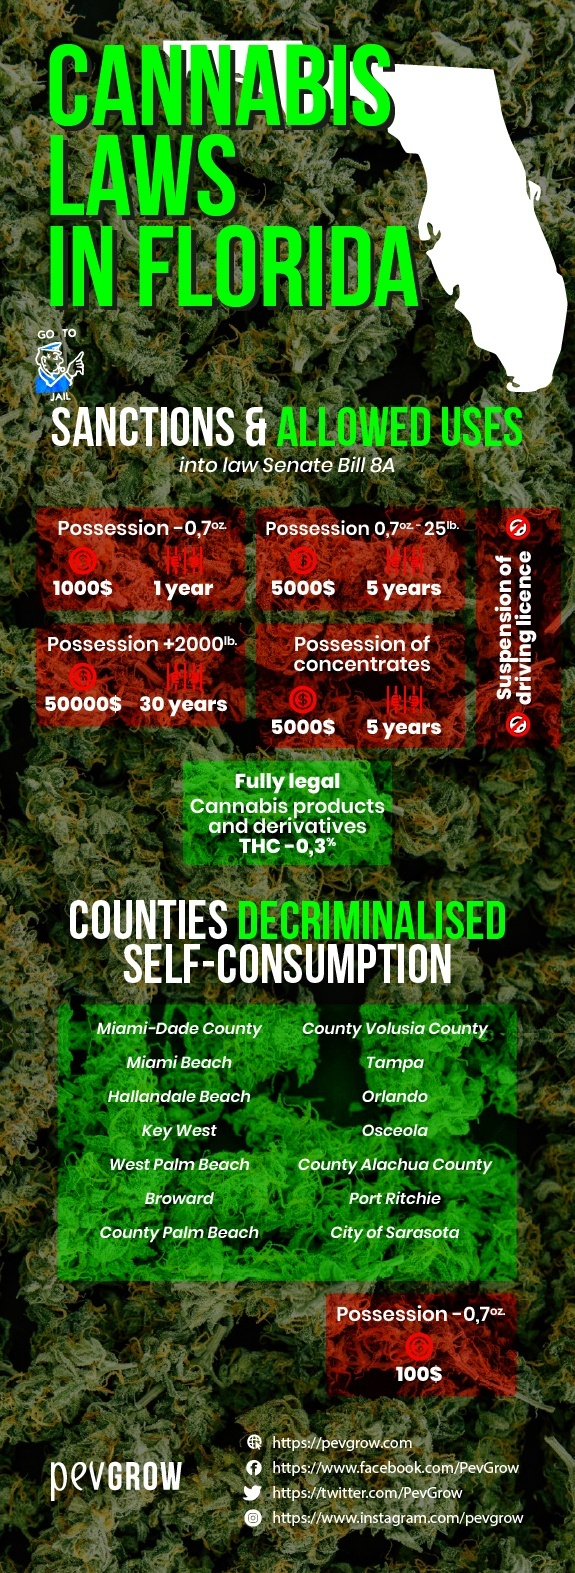 Florida cannabis laws -sanctions and permitted uses-.